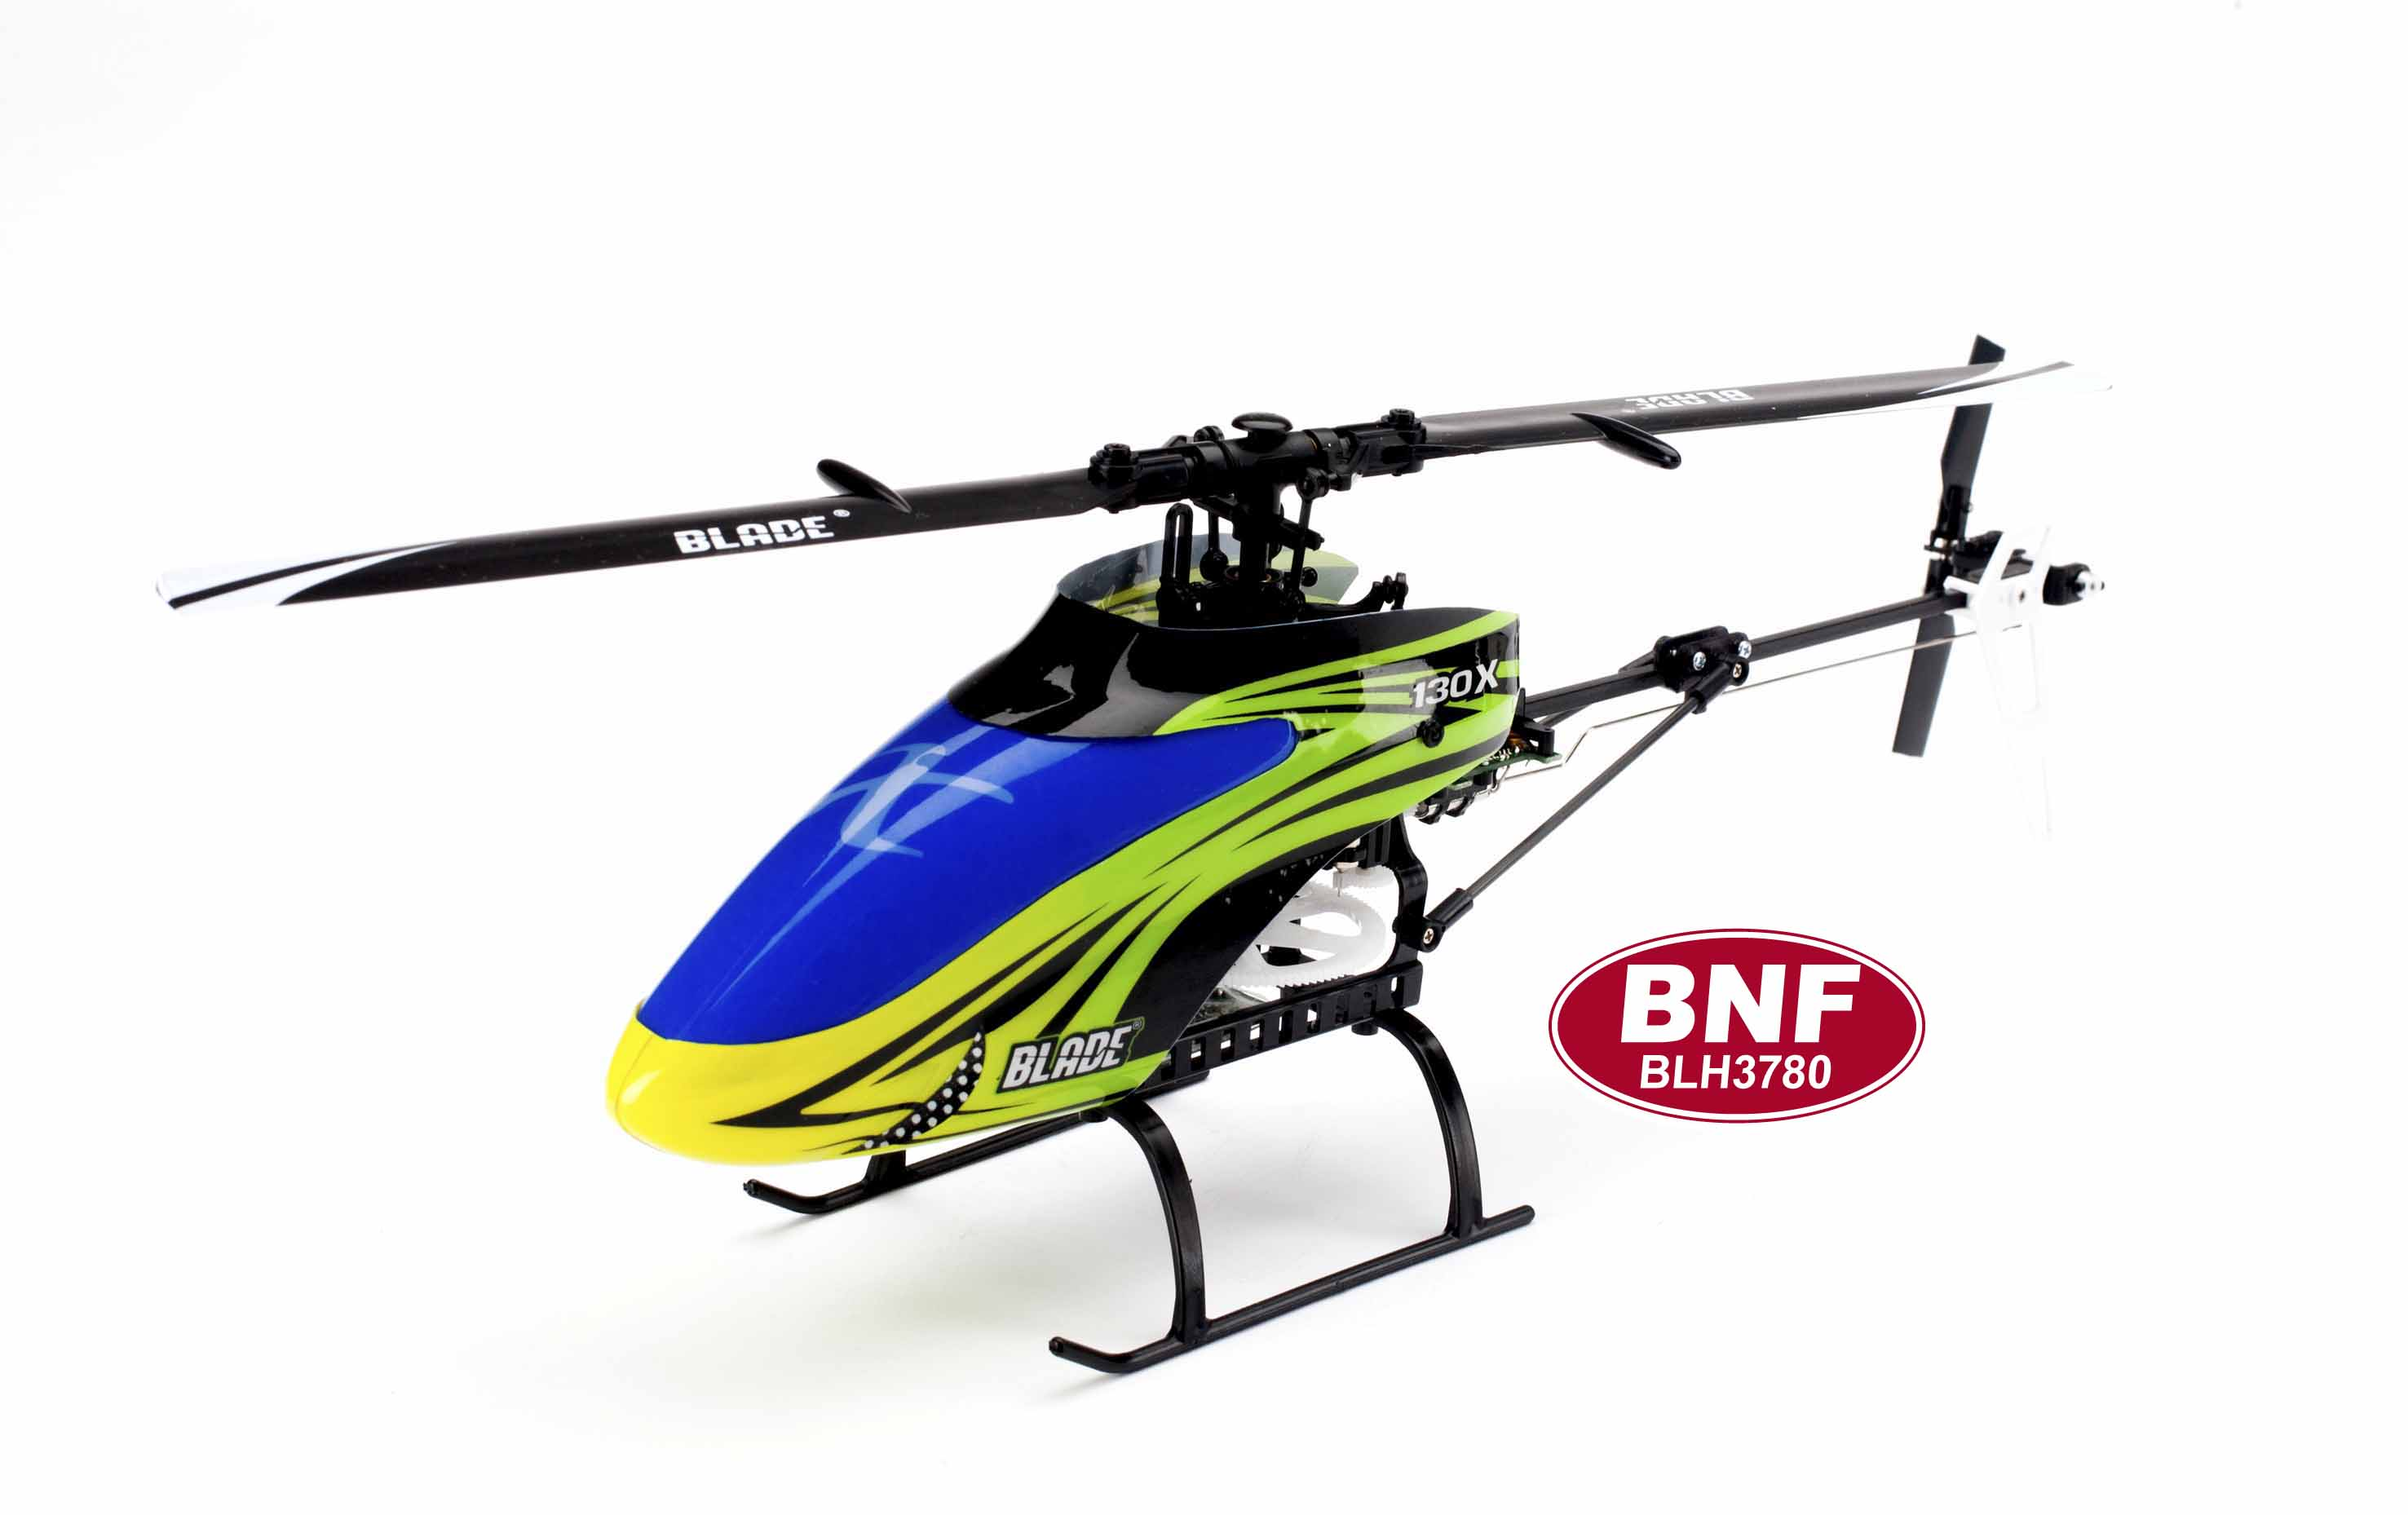 BLH3780 Blade 130 X BNF with AS3X® Technology